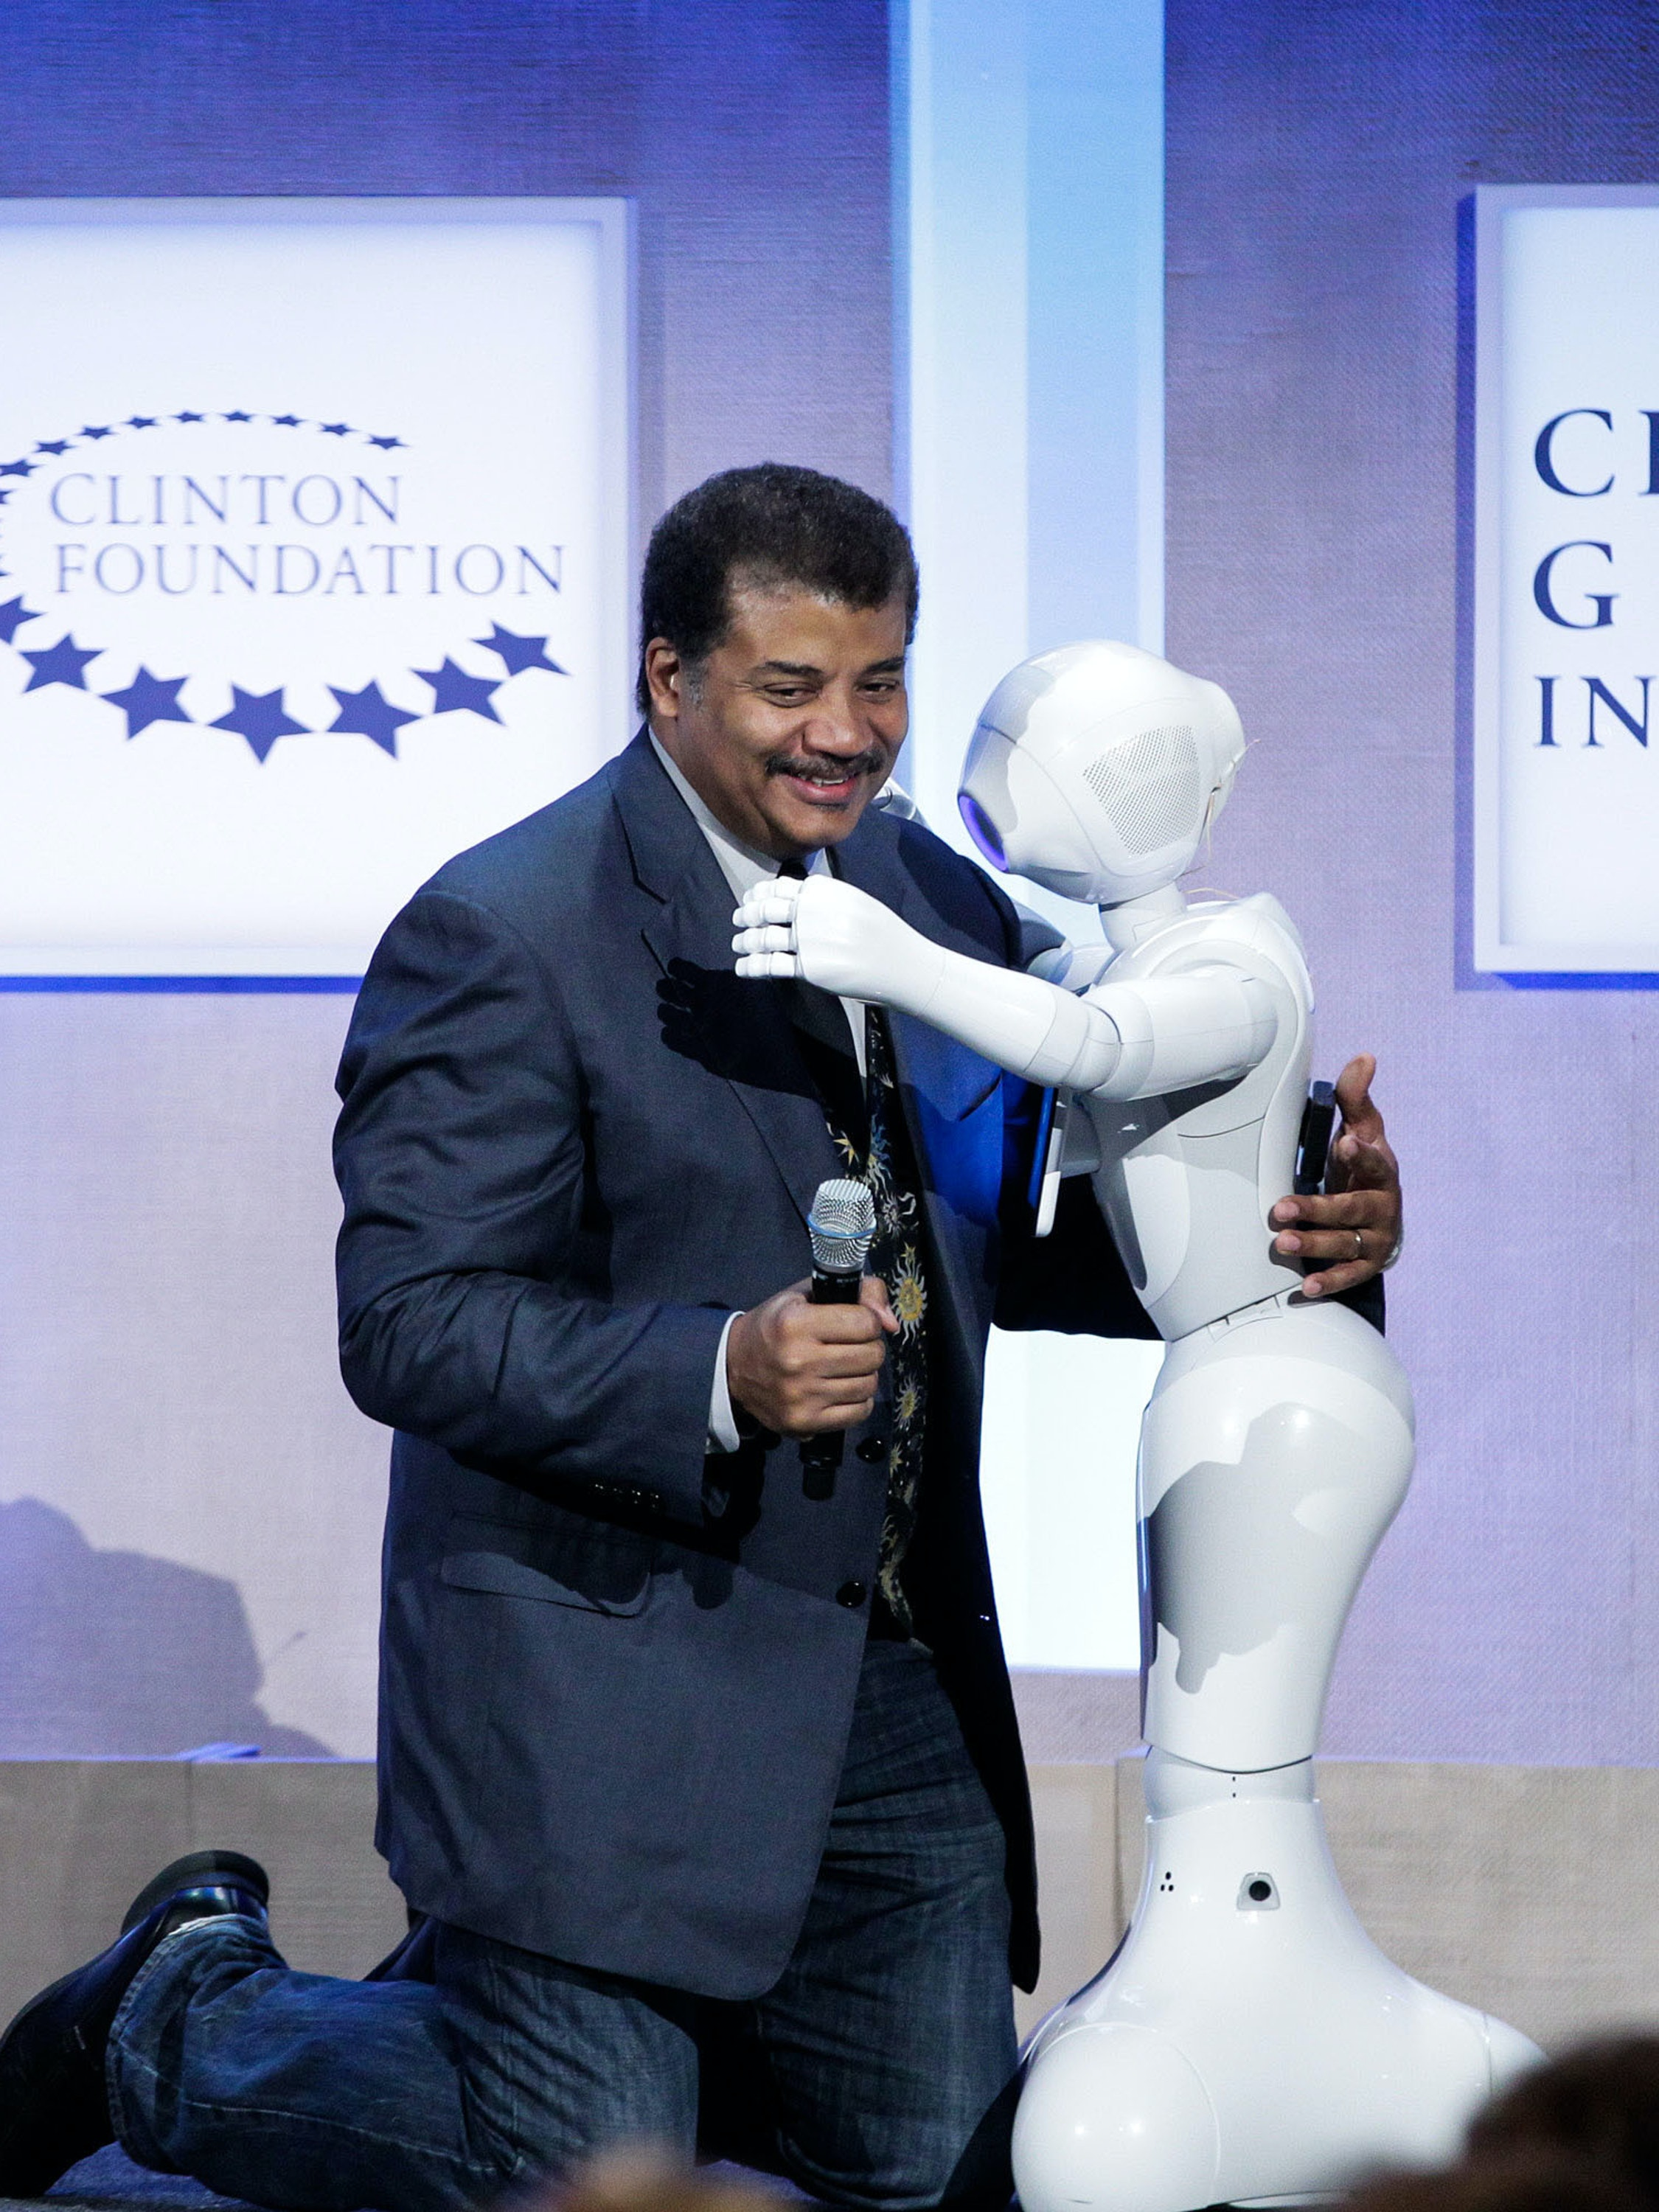 Neil deGrasse Tyson, Astrophysicist, American Museum of Natural History hugs Pepper, Social Humanoid Robot at the Looking to the Next Frontier session during the third day of the 2015 Clinton Global Initiative's Annual Meeting at the Sheraton New York Hotel & Towers on September 28, 2015 in New York City.